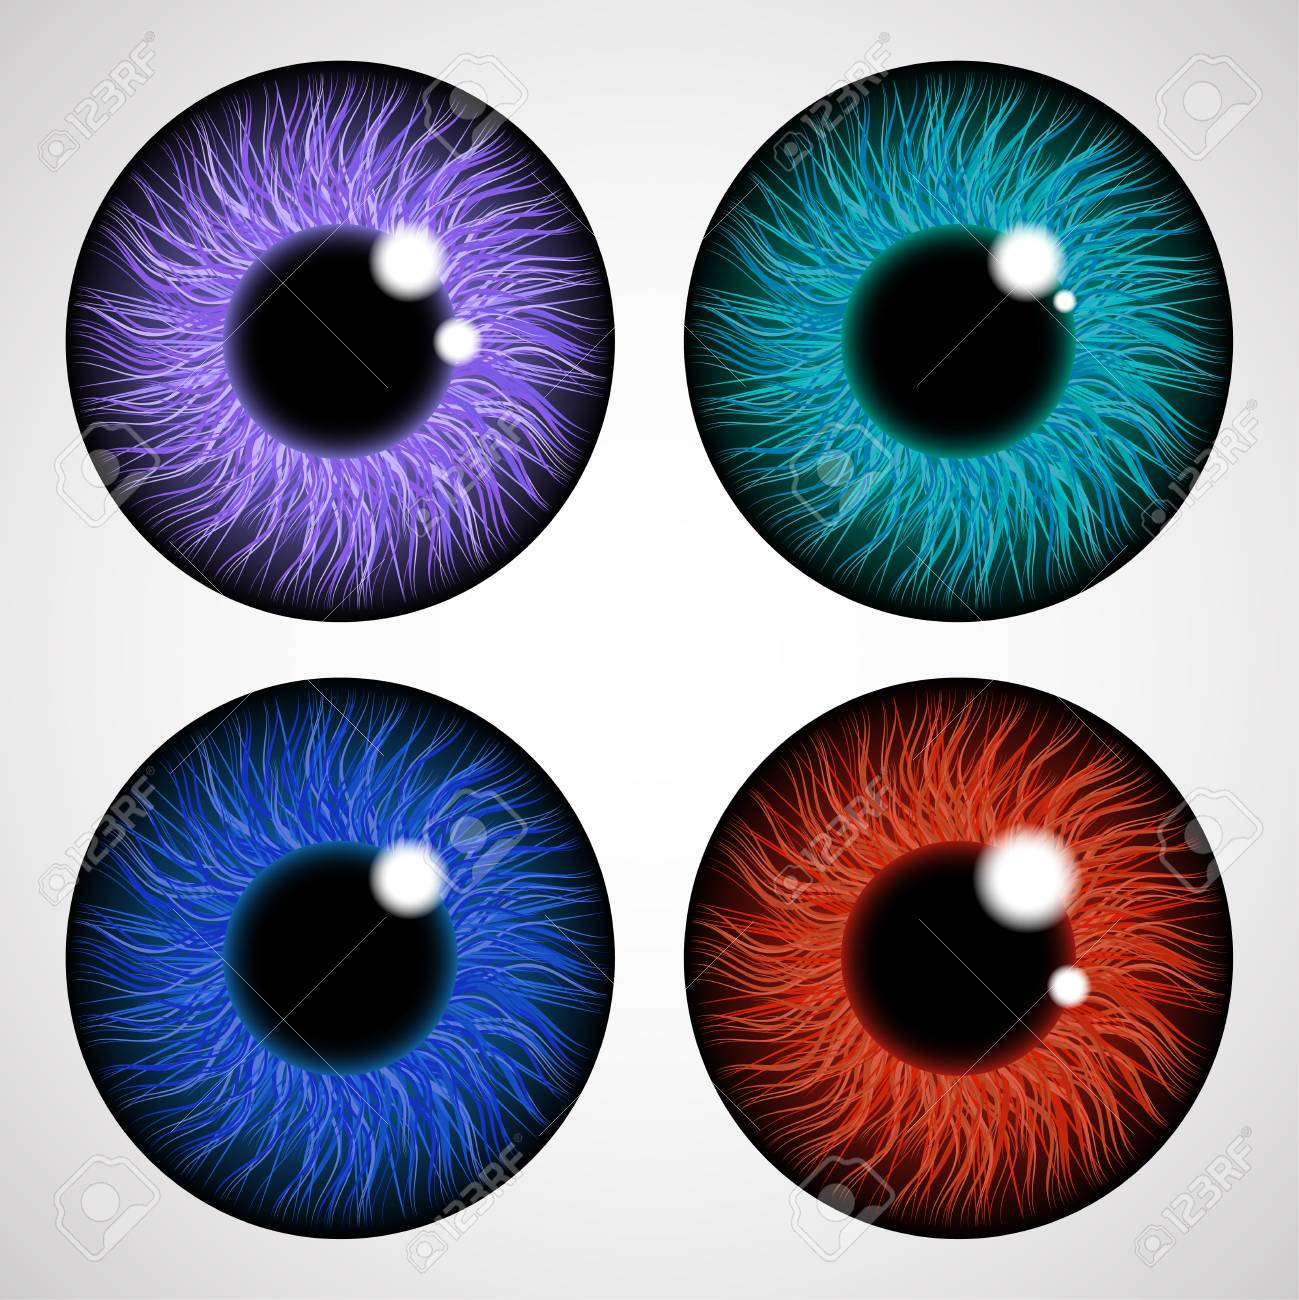 Iris Of The Human Eye Isolated On Light Background Various Royalty Free Cliparts Vectors And Stock Illustration Image 112038803